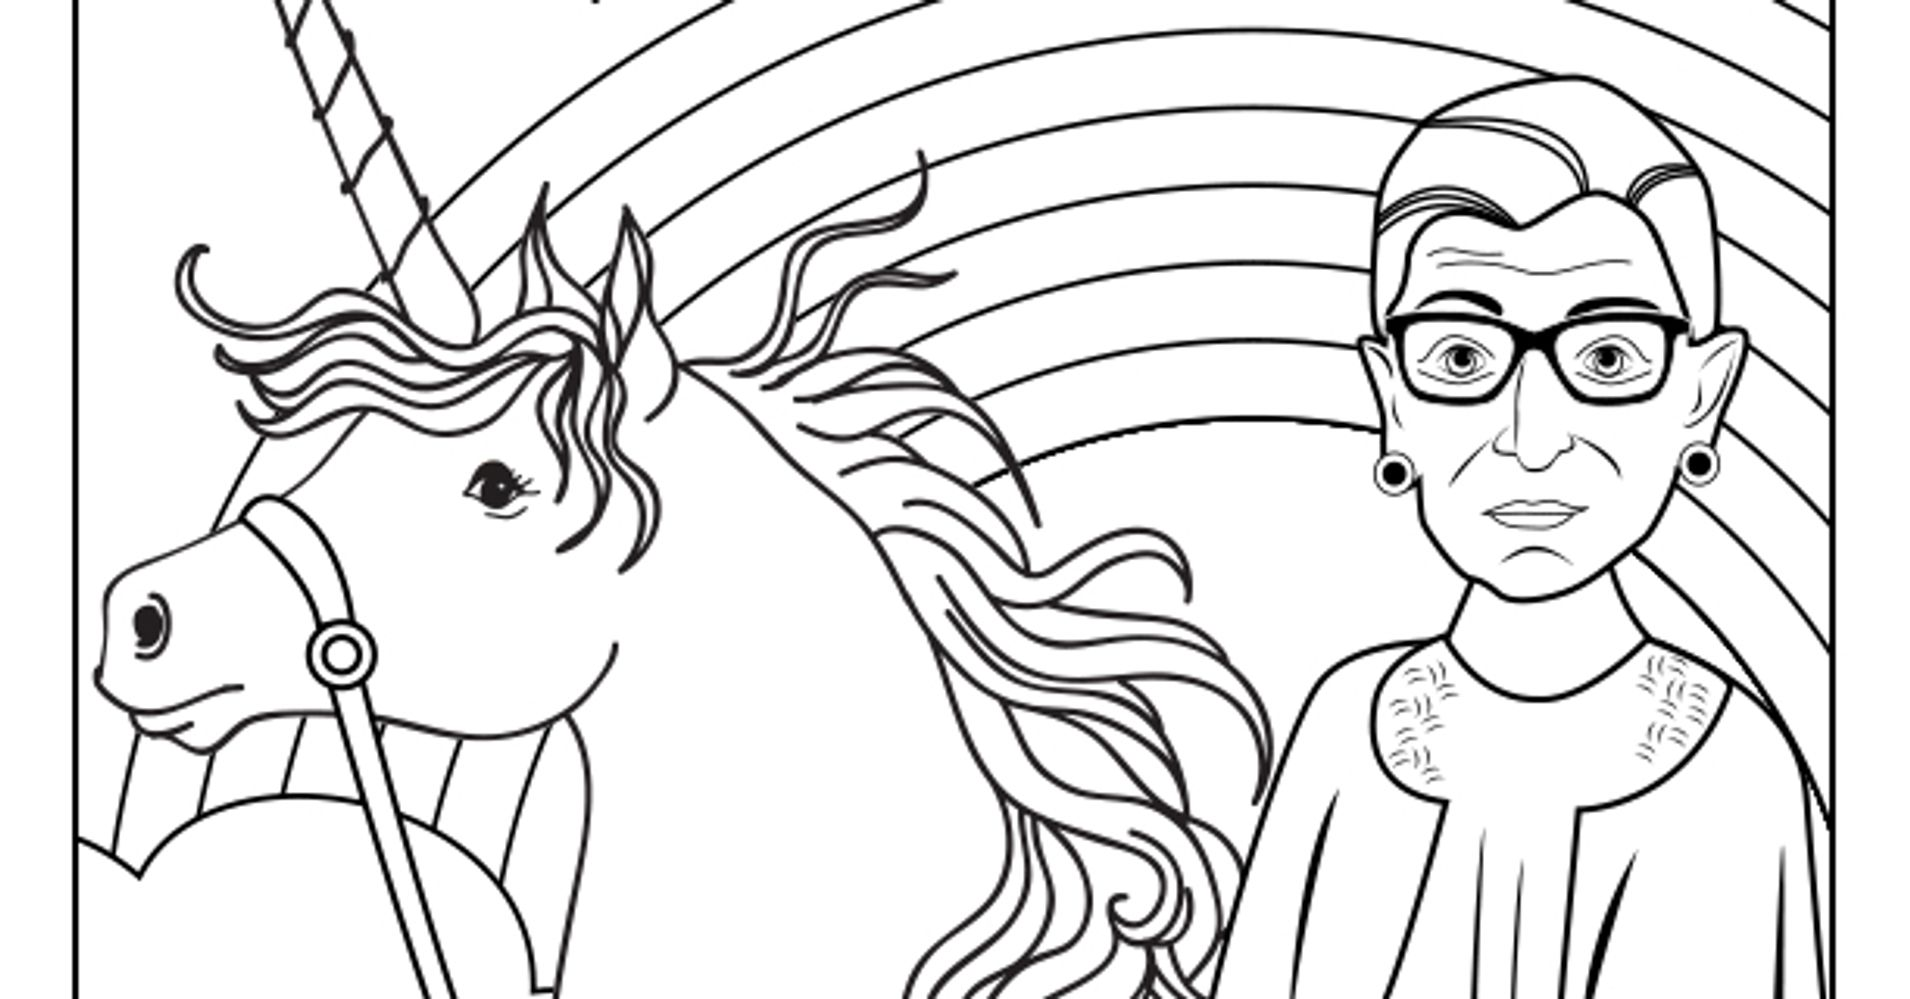 The Notorious RBG Coloring Book Of Our Feminist Dreams Is